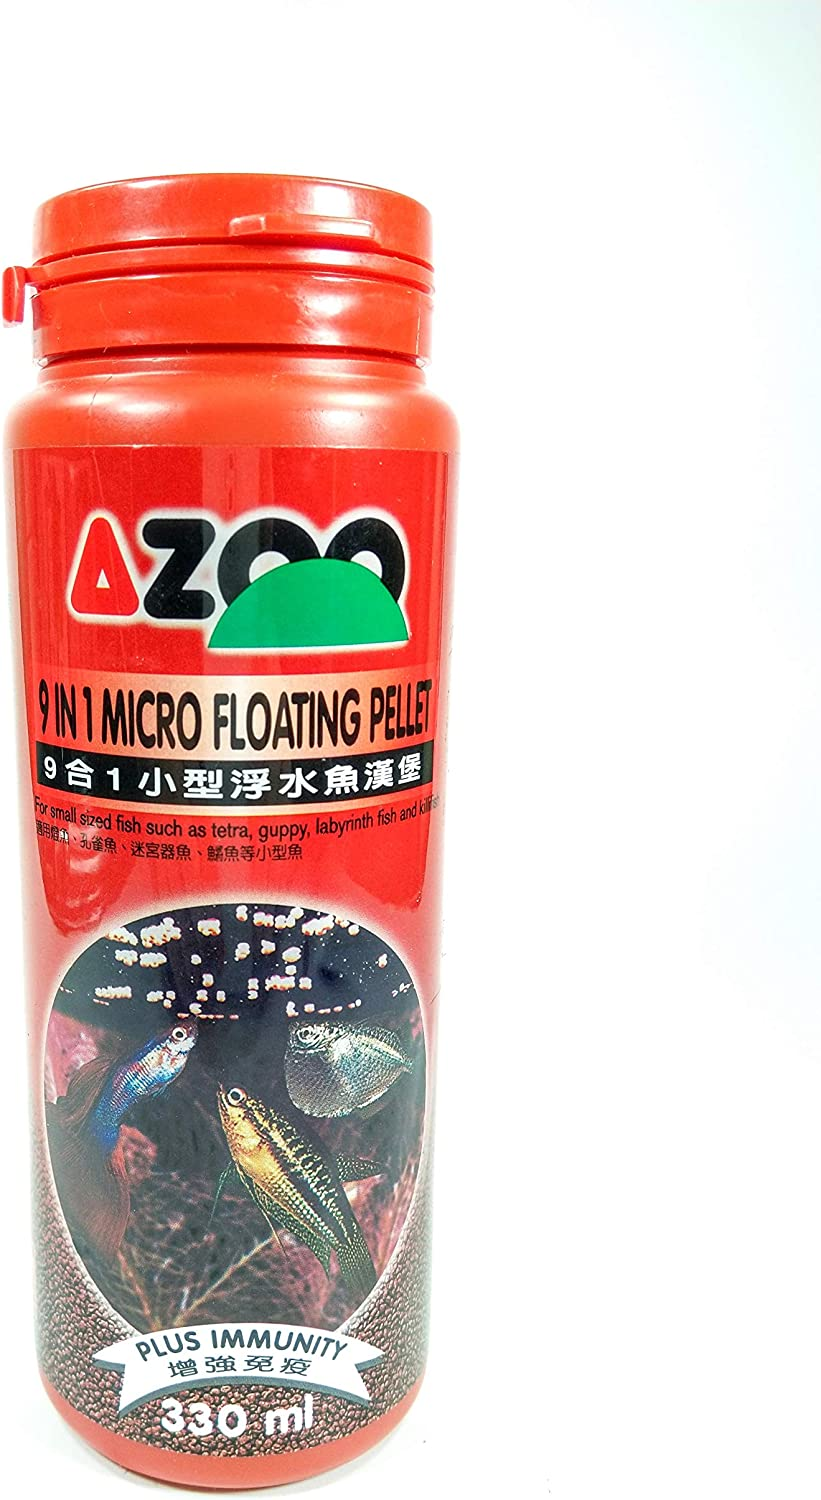 Azoo 9 in 1 Micro Floating Pellet for Small Sized Fish Such as Tetra, Guppy, Labyrinth Fish and Killifish Fish Food 330ml